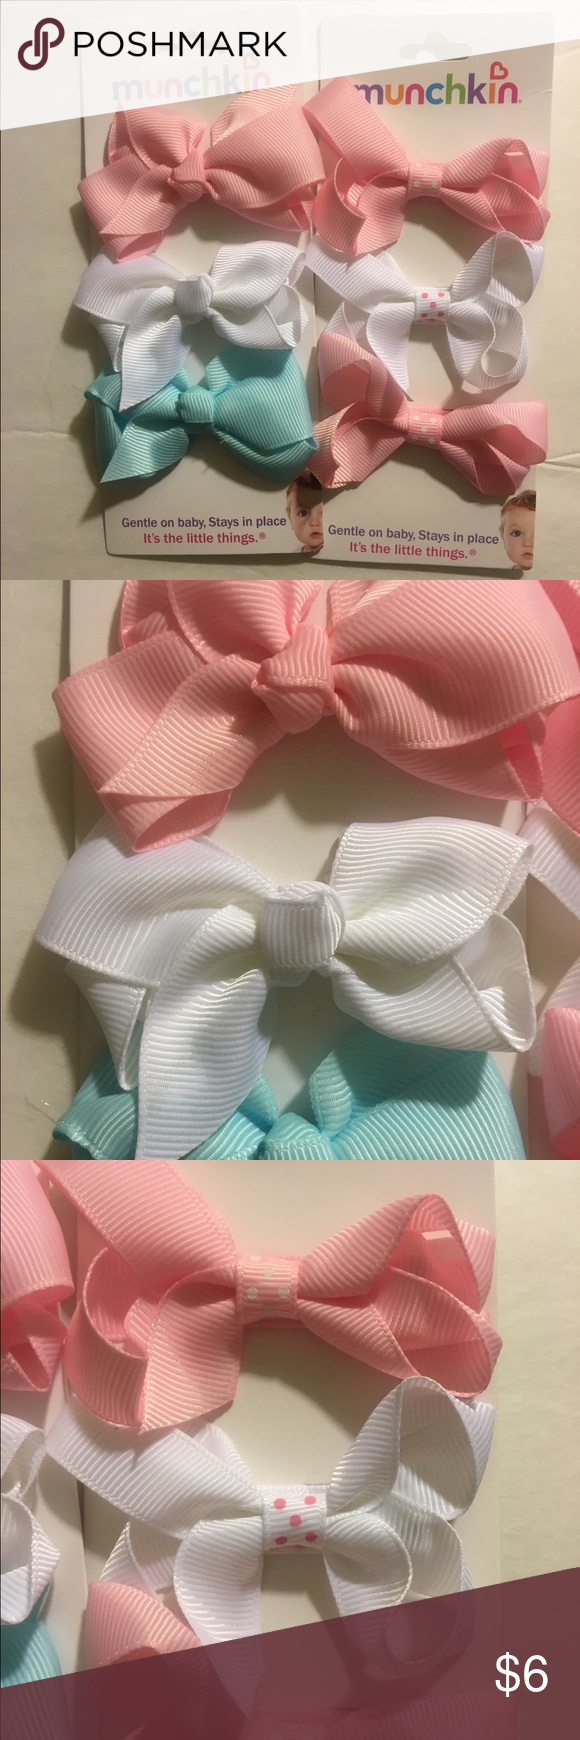 Set of 6 clip in bows 3 pink bows (2 with tiny polka dots in center) 2 white ( one with polka dots), and one plain light blue. Munchkin Accessories Hair Accessories